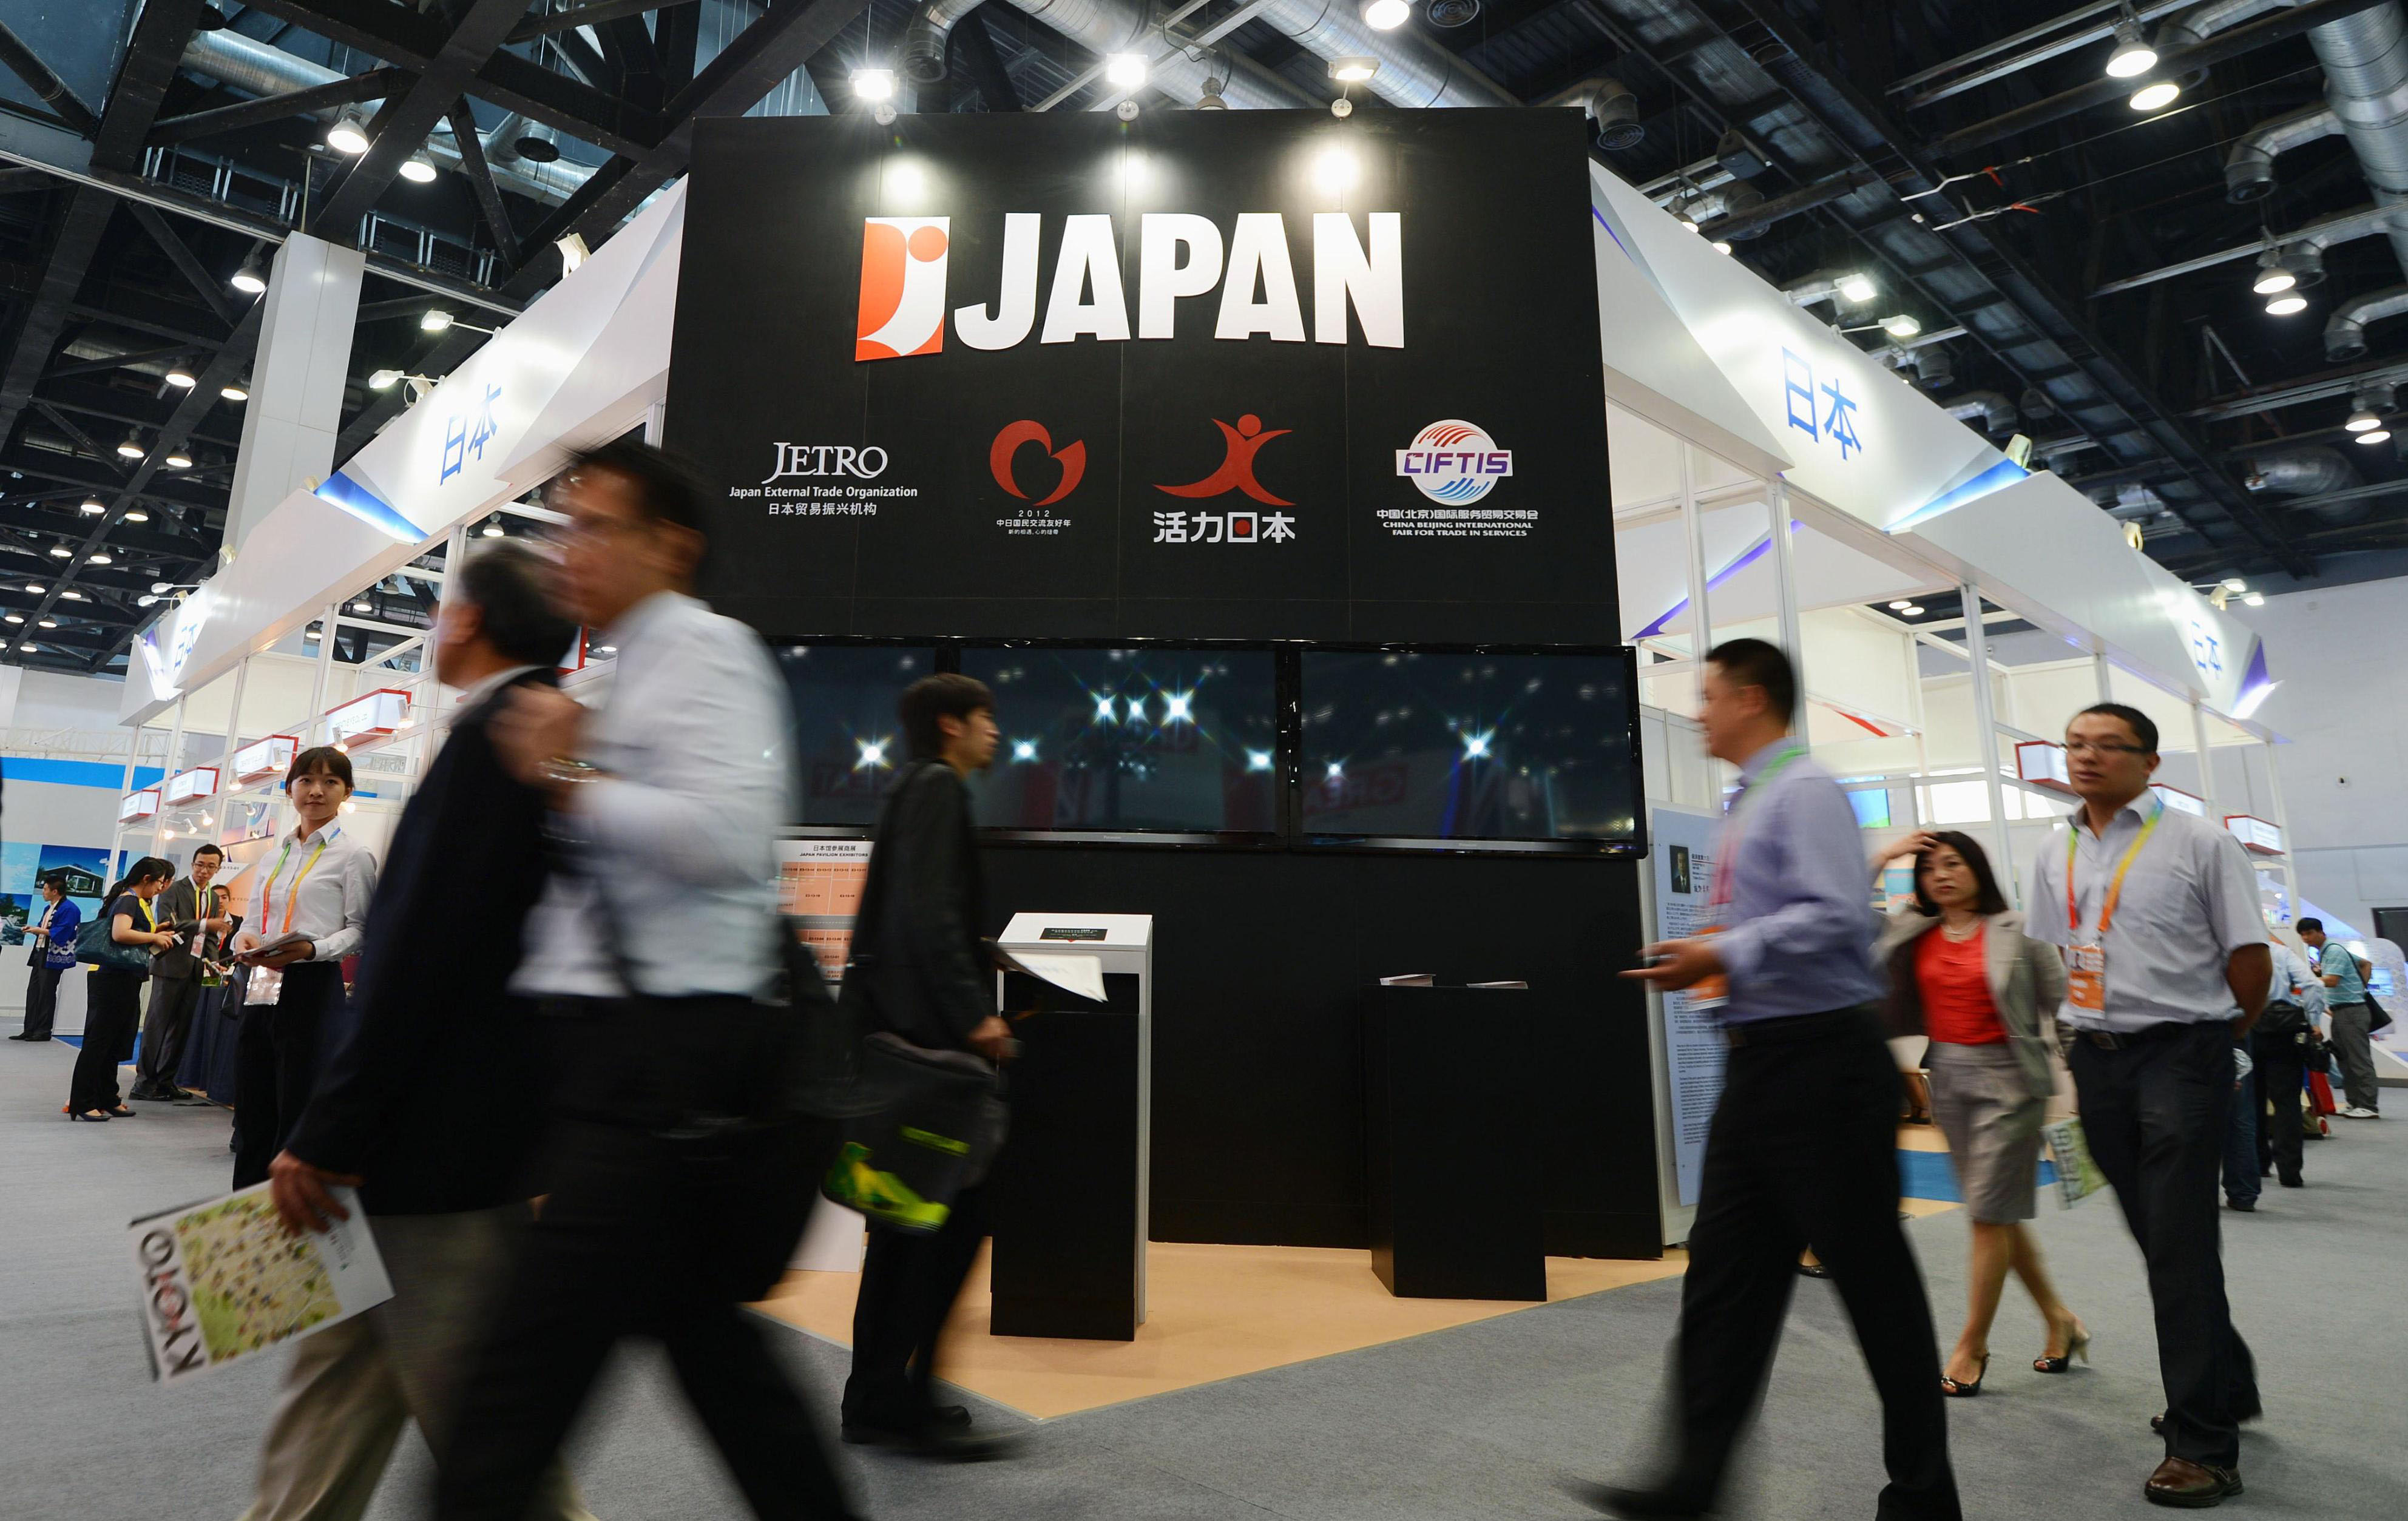 Chinese consumers get 'Cool Japan' exposure